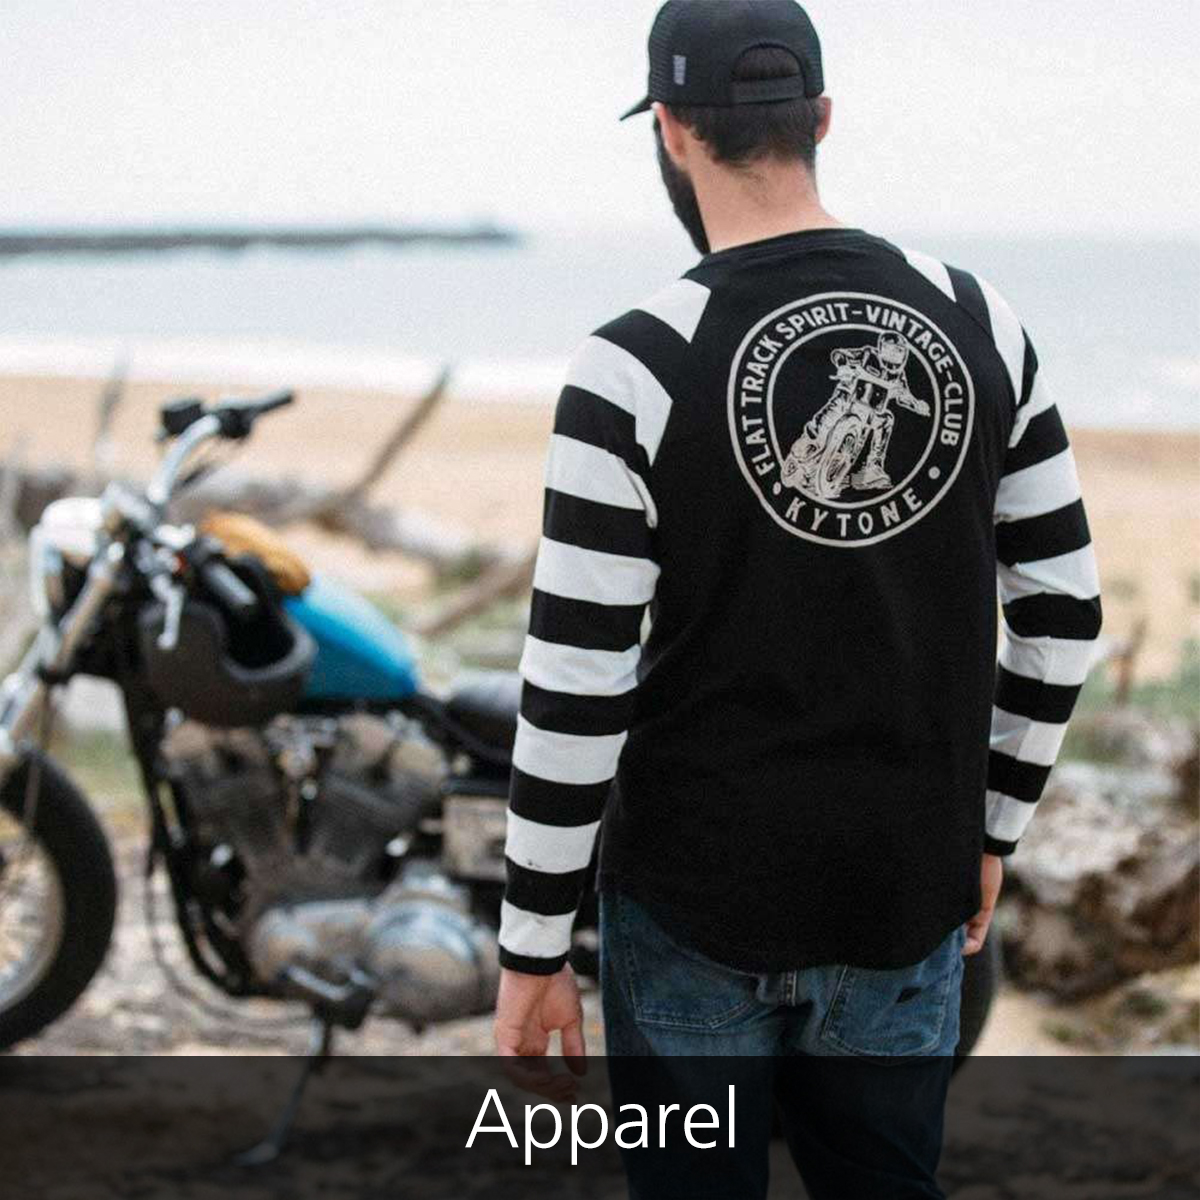 online indian and victory motorcycle clothing shop